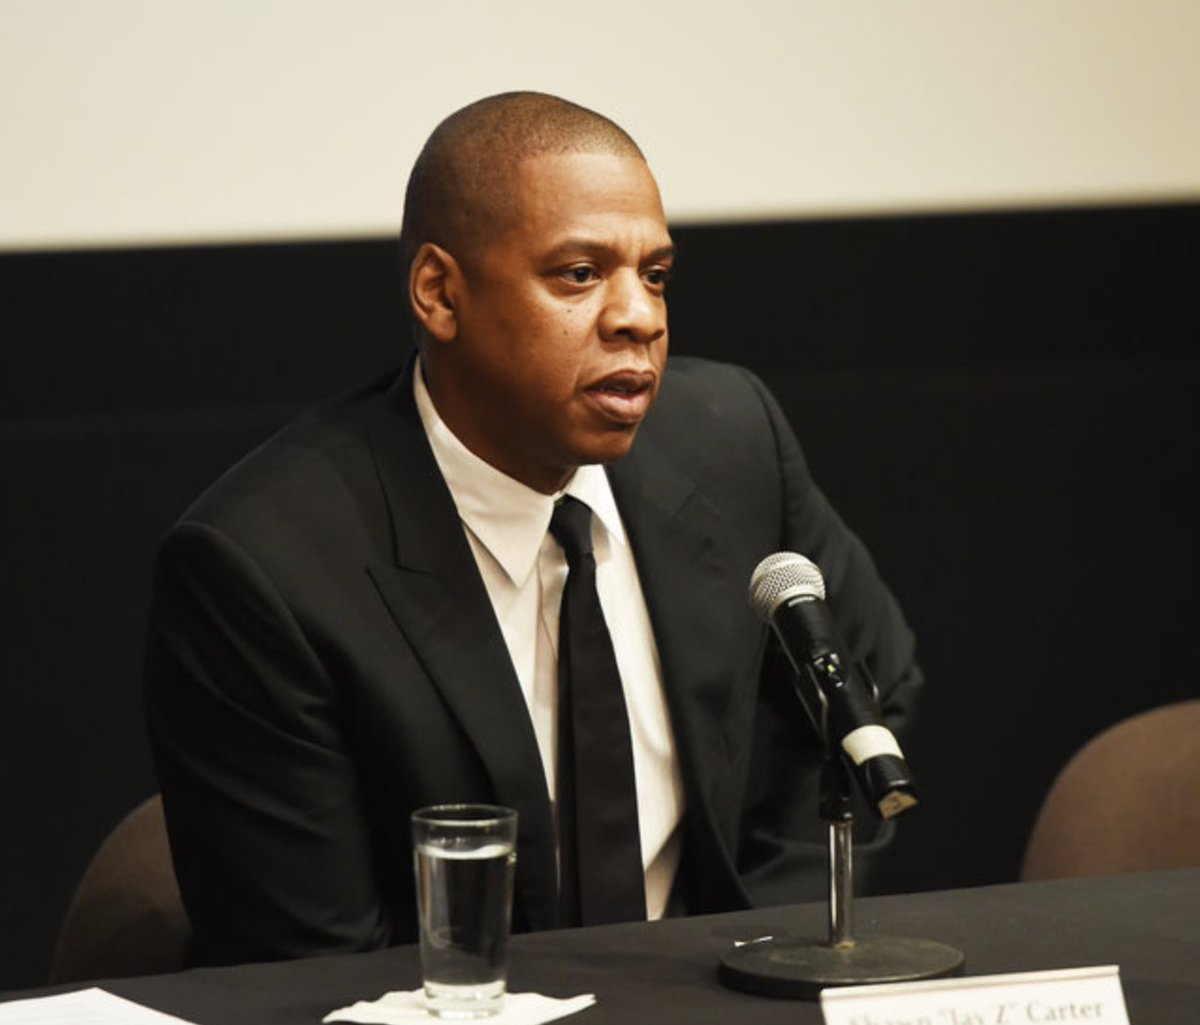 Sprint bought a whopping 33 percent of Tidal: https://t.co/dOWDGmhEGV